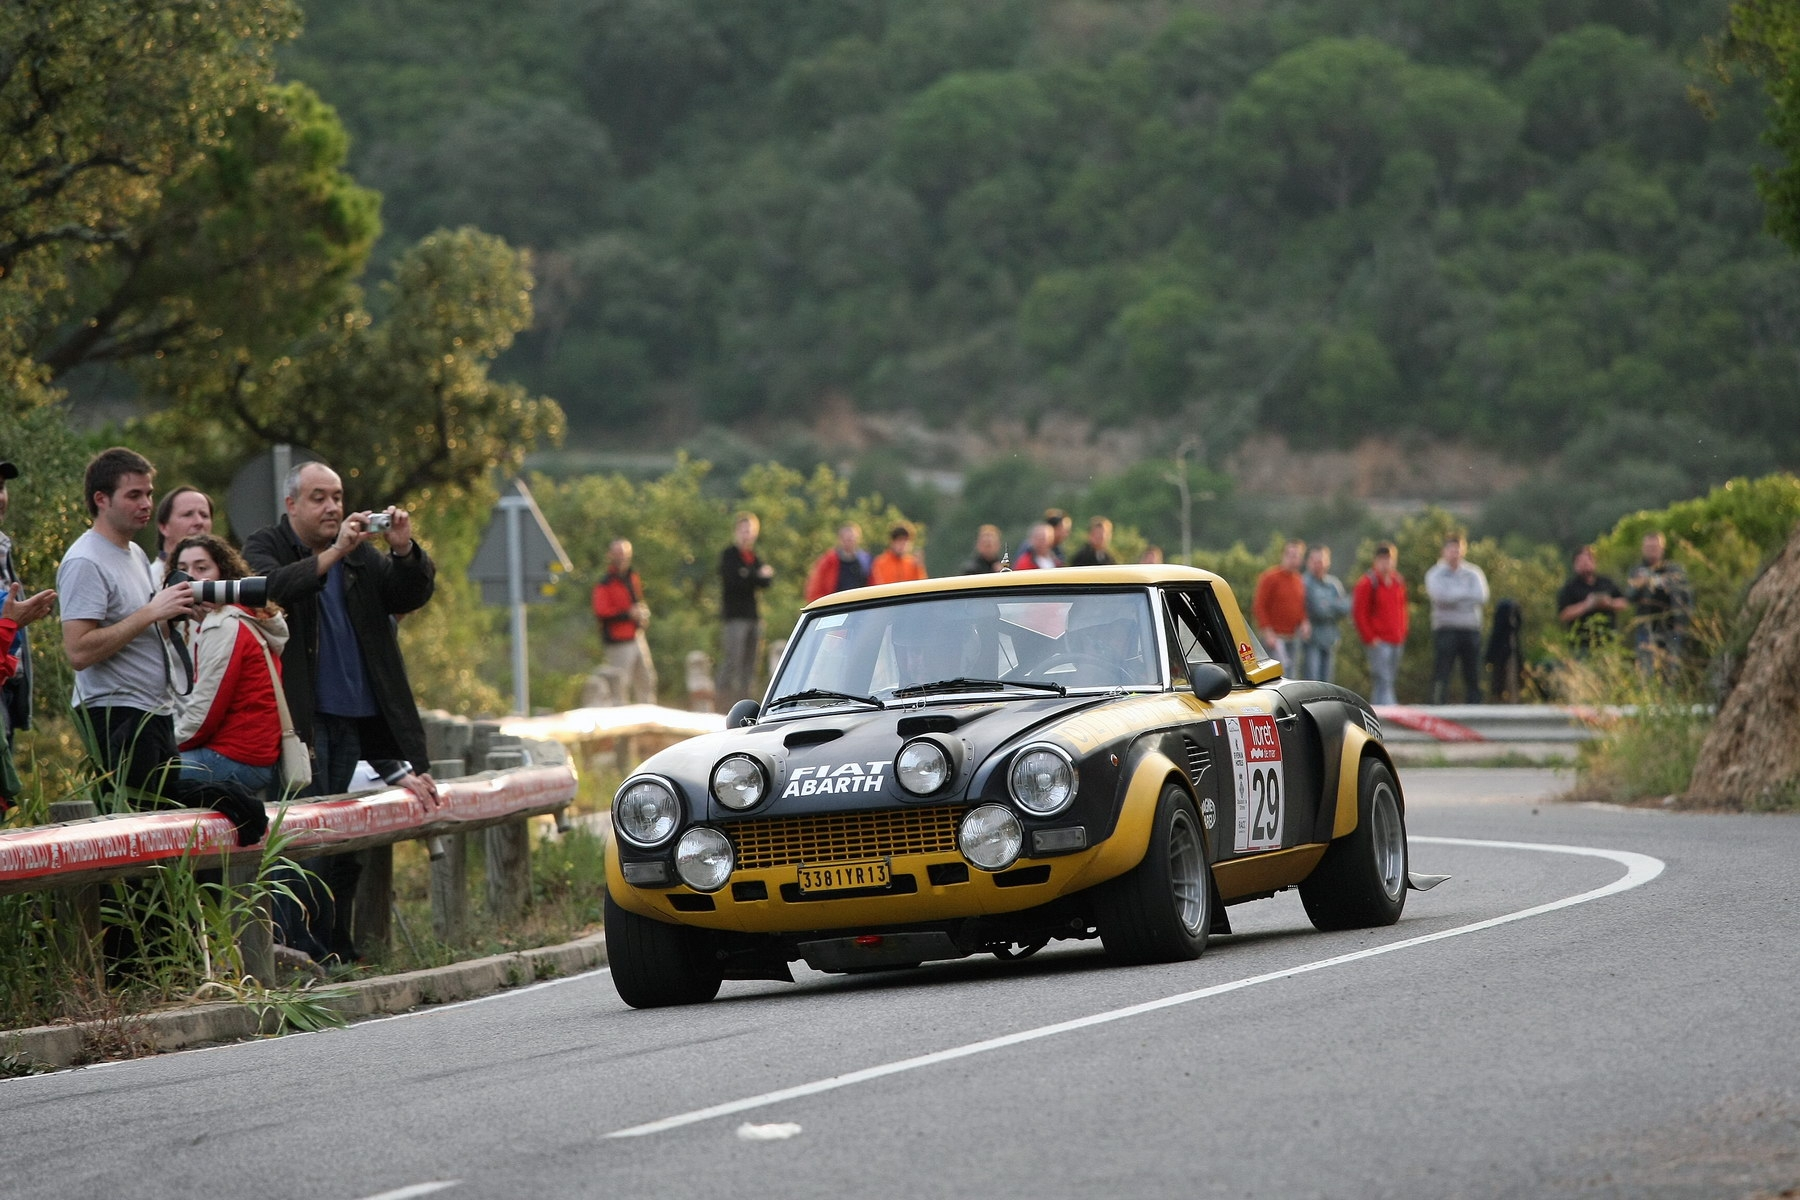 The 124 Rallye was a potent rally car in its own right, yet ultimately struggled against the Alpine A110